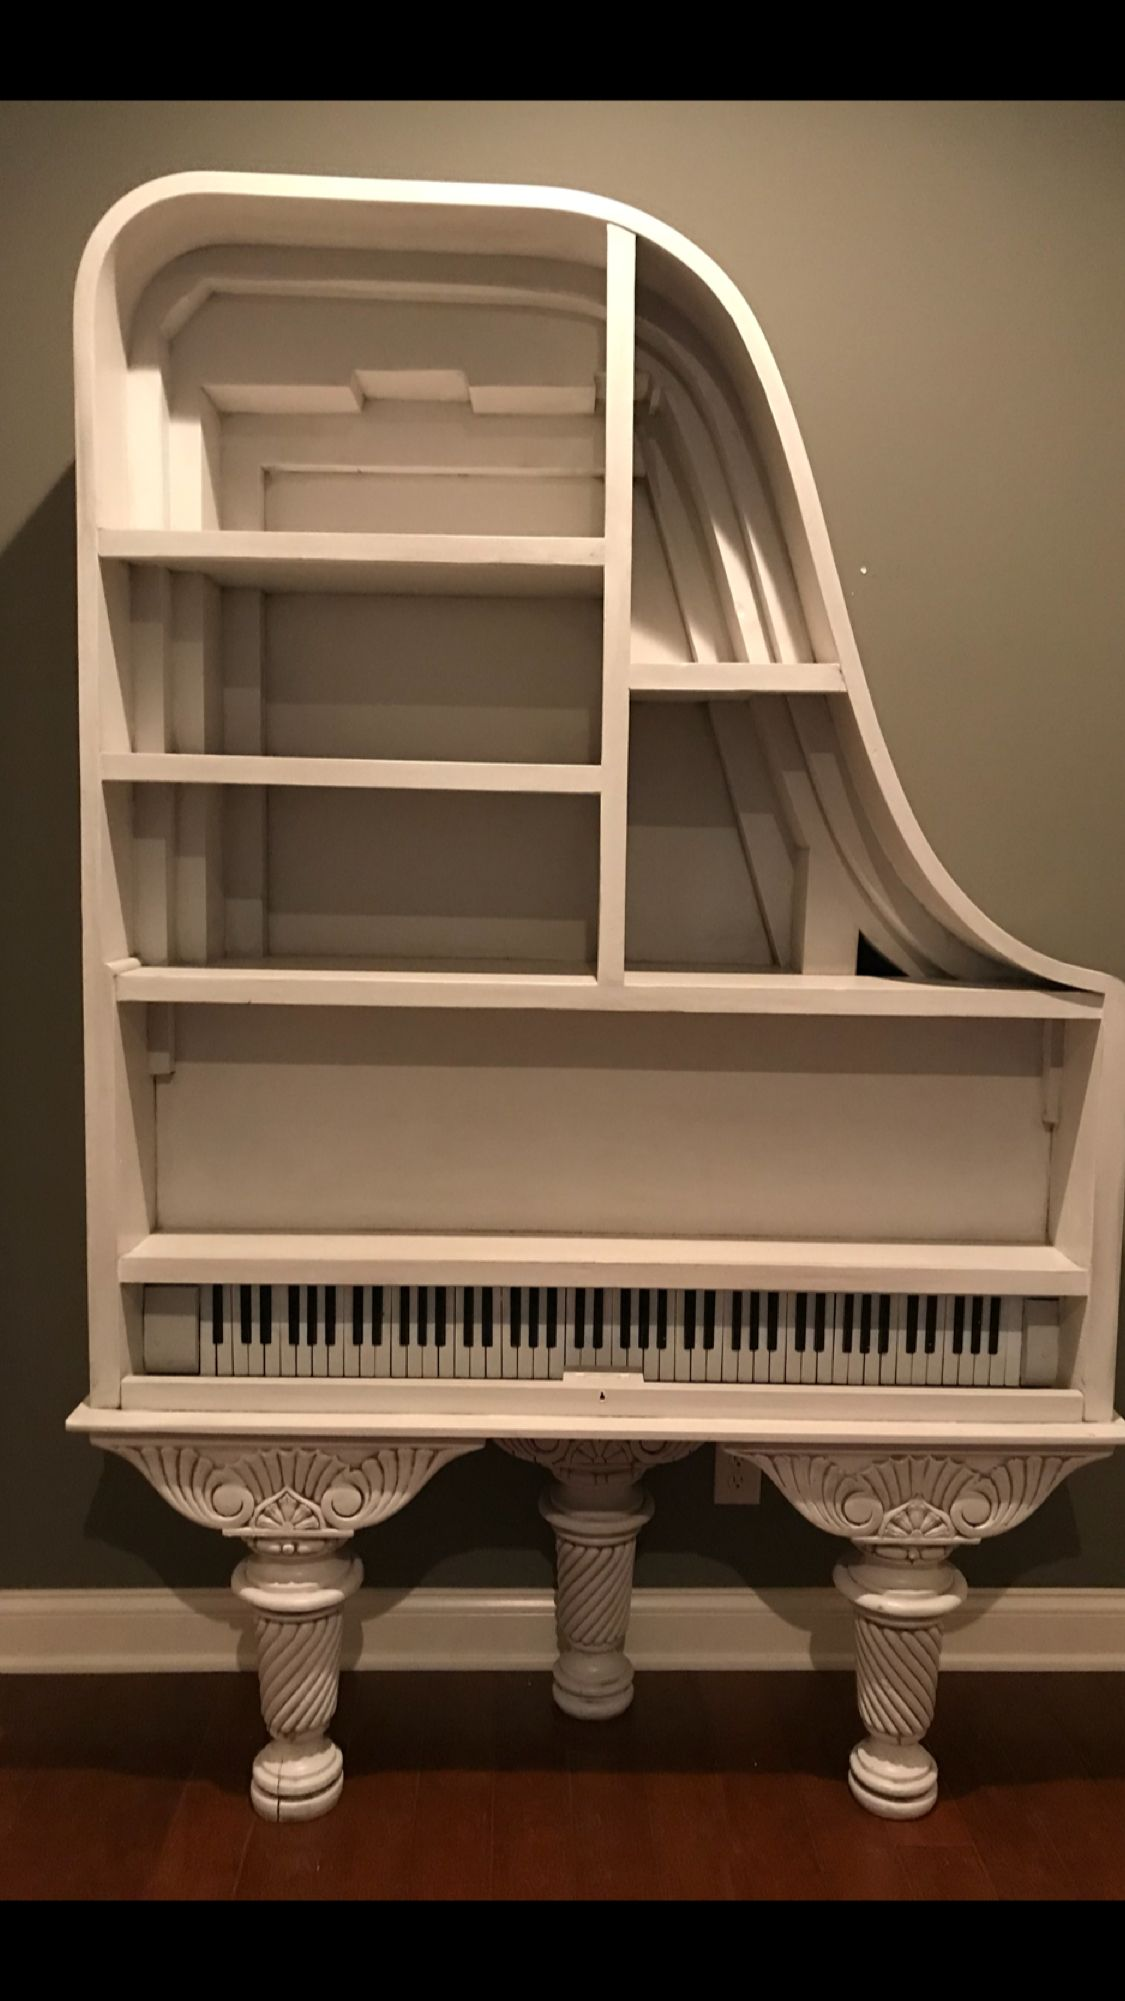 I repurposed my grand piano that would no longer stay